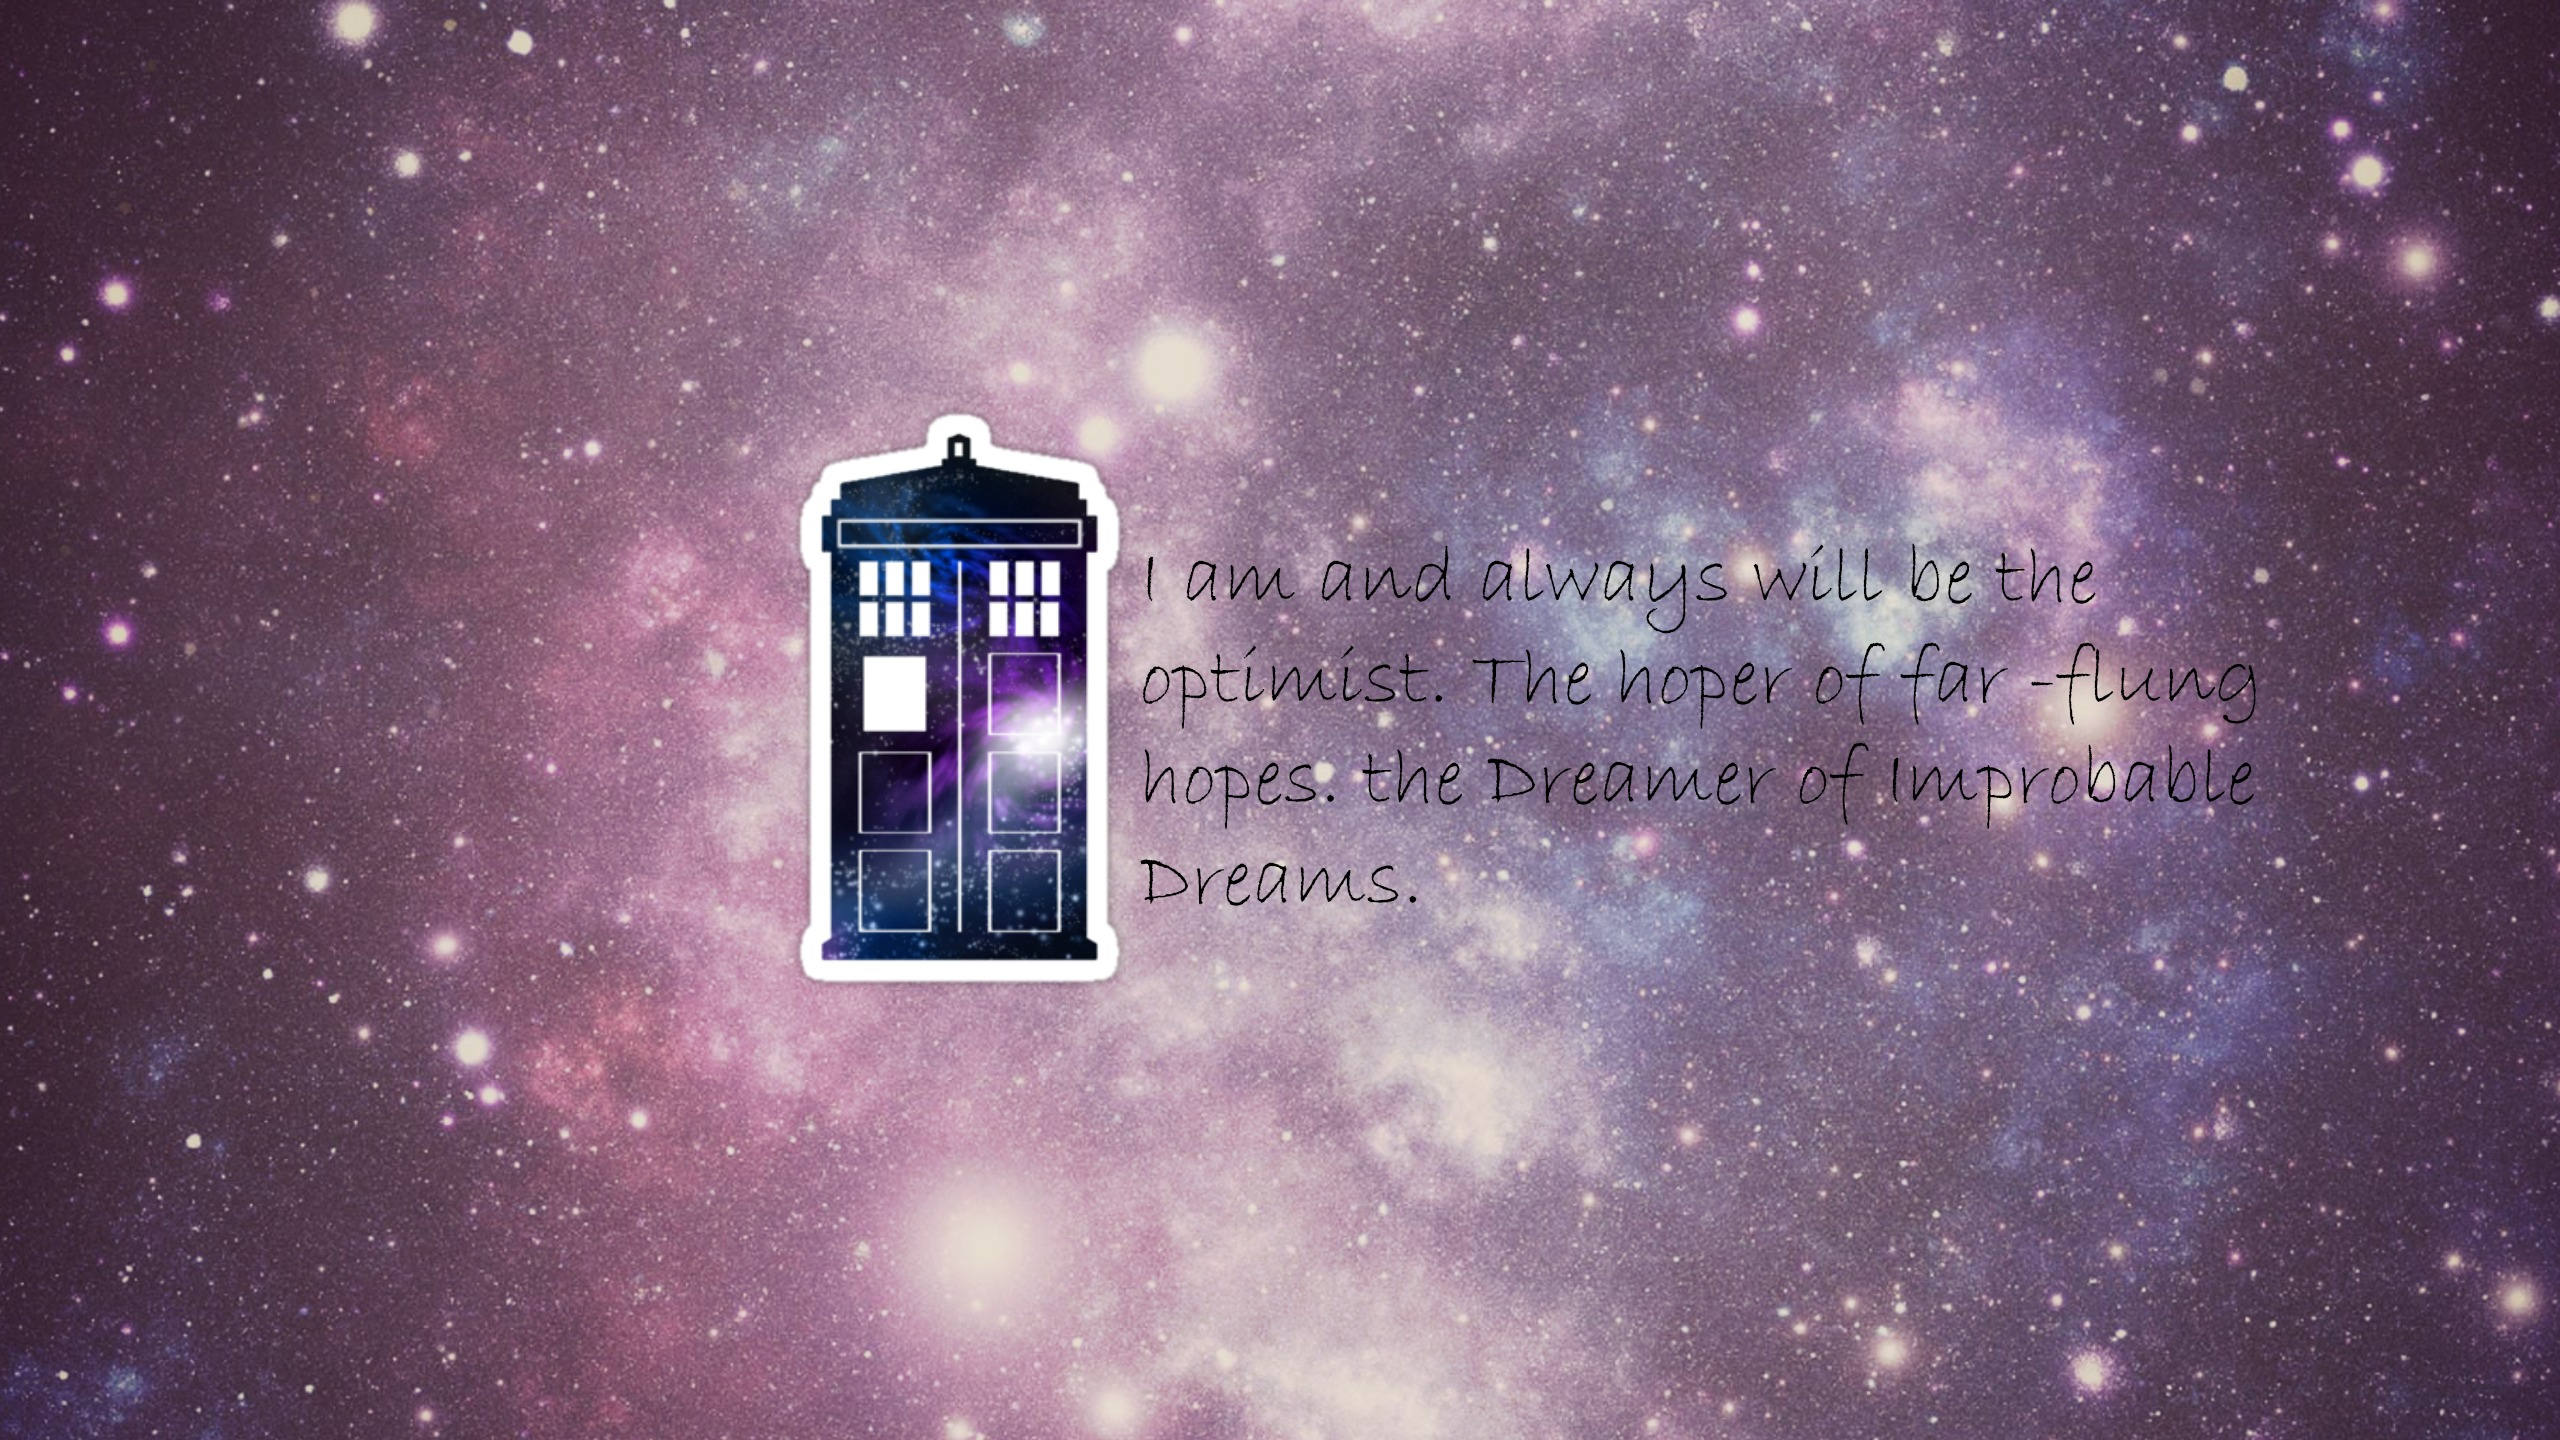 wallpaper i made   Doctor Who Wallpaper 36078109 2560x1440